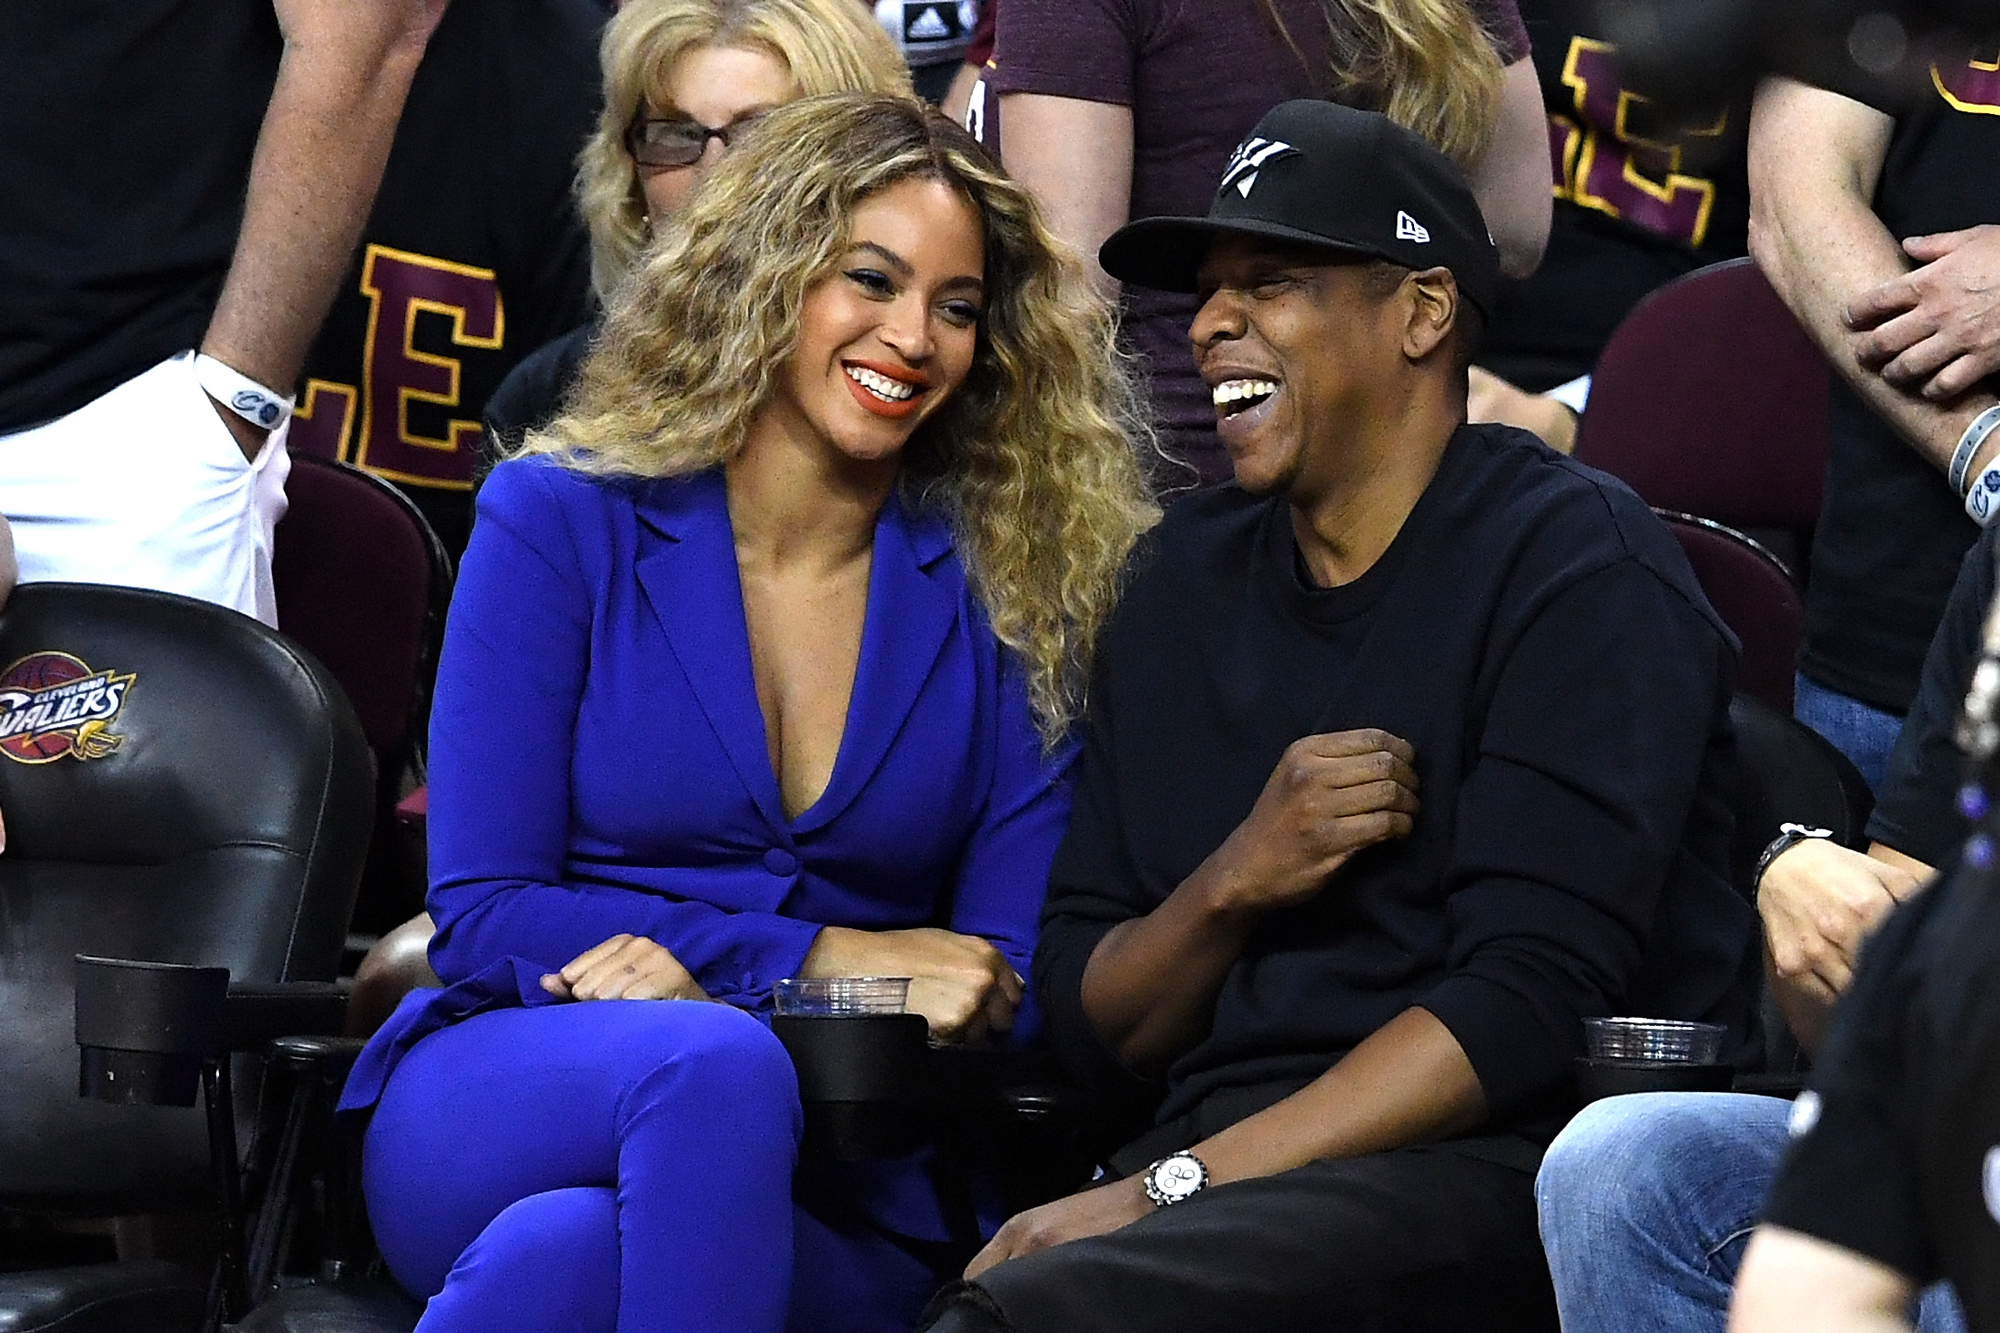 Beyonce and Jay Z attend Game 6 of the 2016 NBA Finals between the Cleveland Cavaliers and the Golden State Warriors at Quicken Loans Arena on June 16, 2016 in Cleveland, Ohio